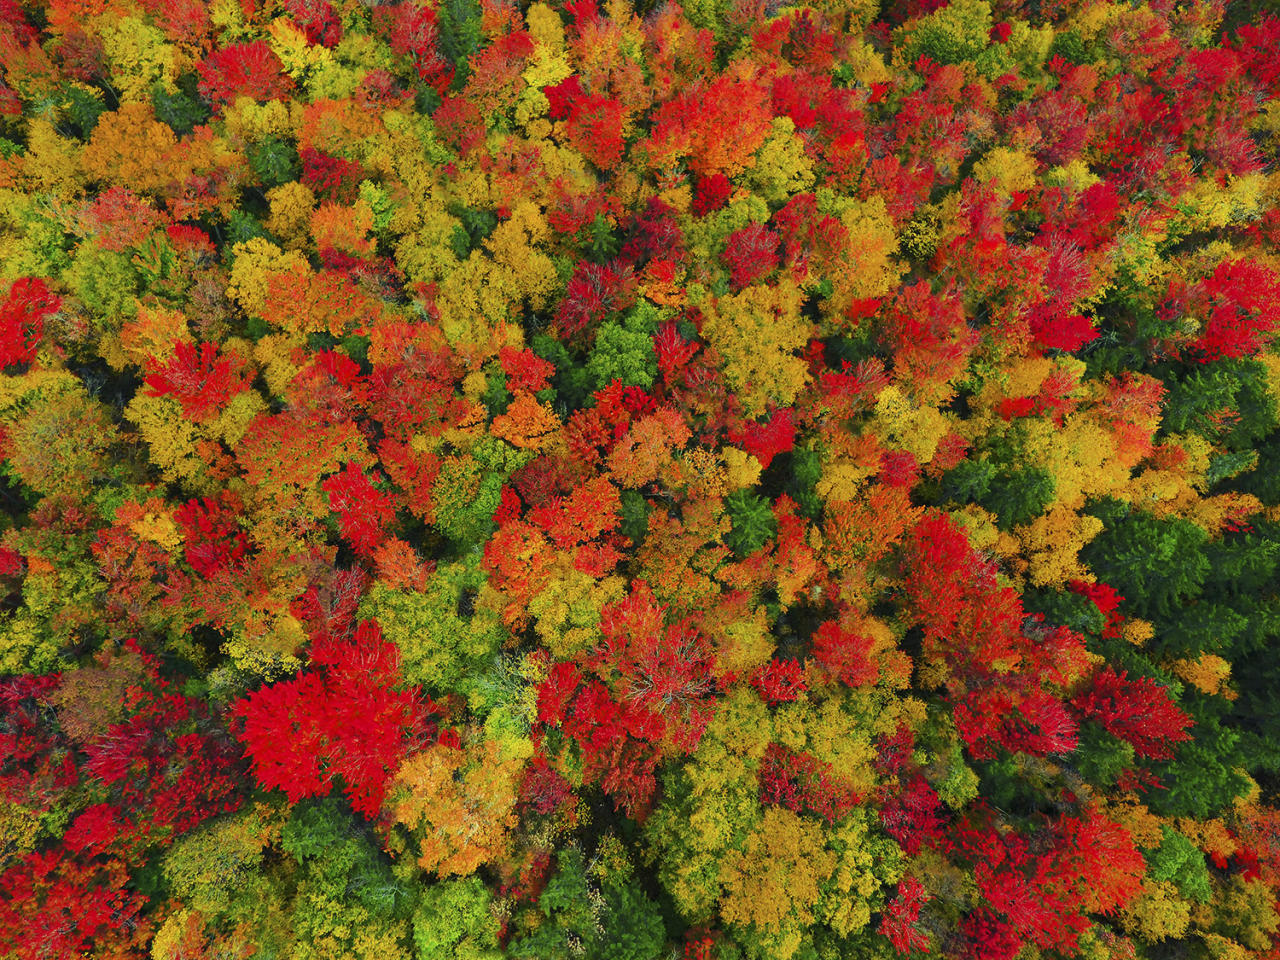 <p>This beautiful autumn landscape comes to life as the leaves change color ready for fall. (Photo: Matt Benedetto/Caters News) </p>